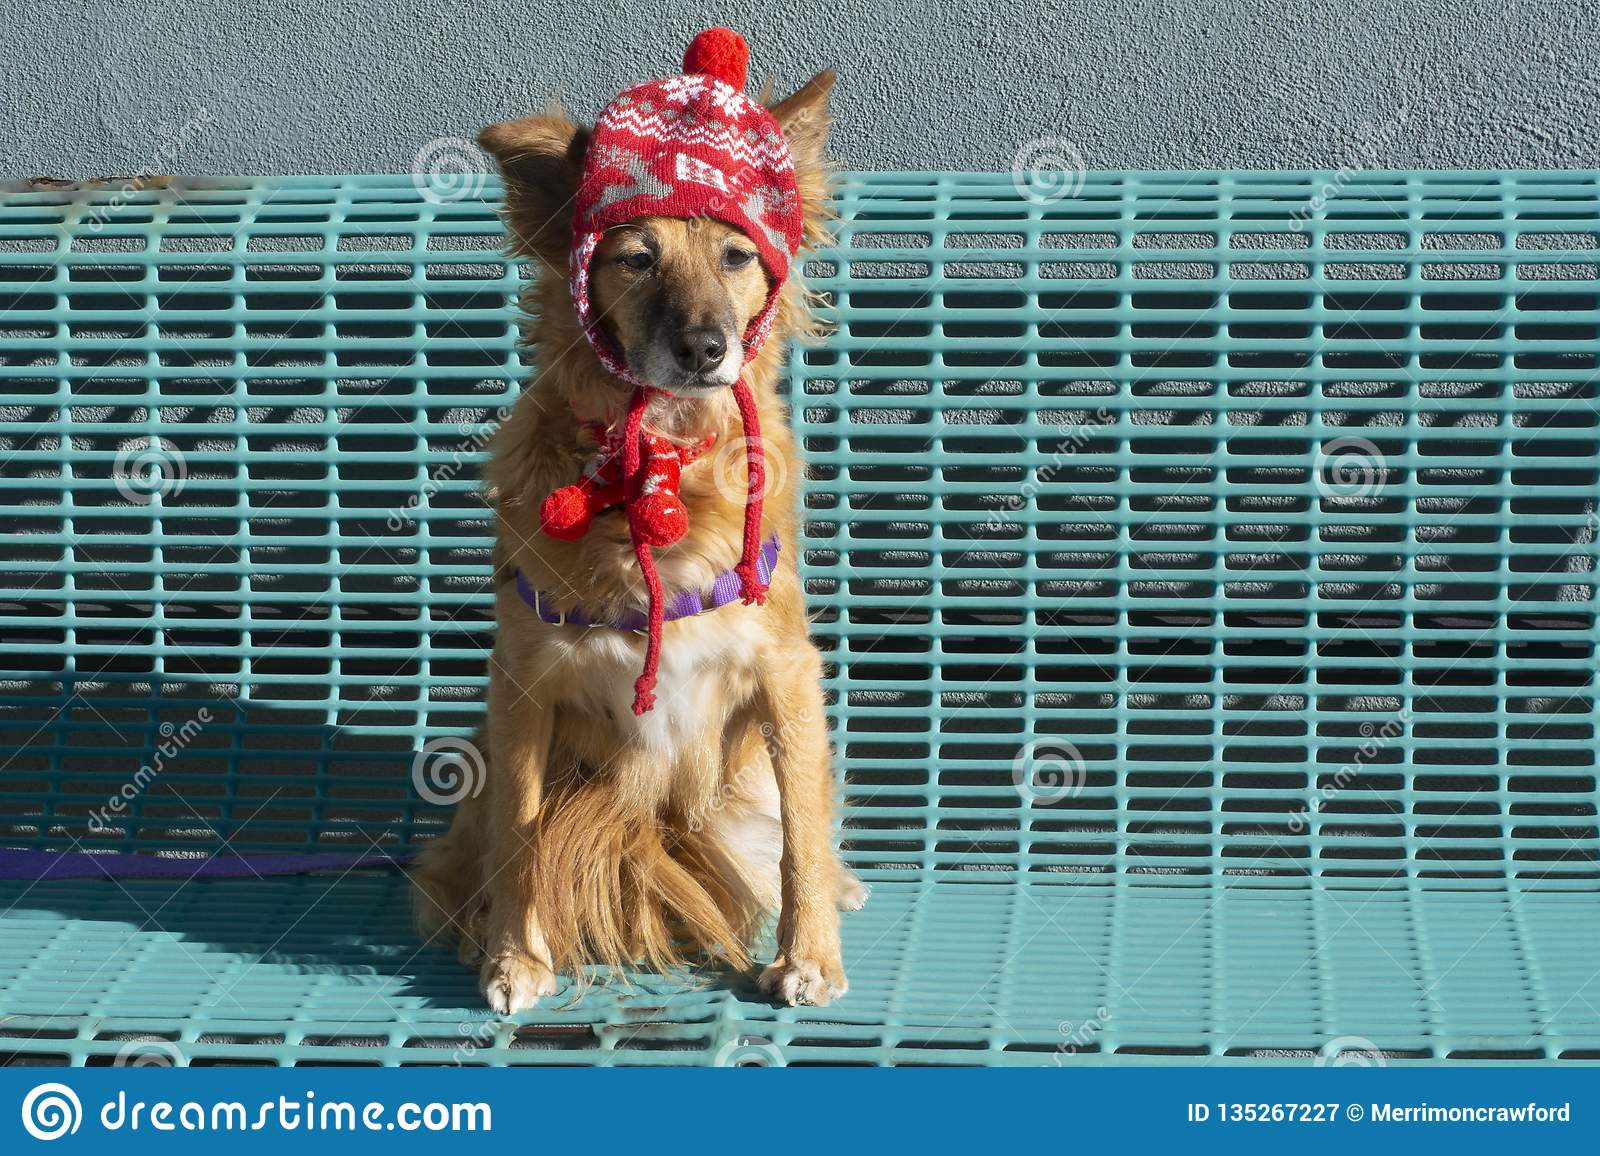 c3e45d75 Dog Sitting On Bench In Winter Hat And Scarf Stock Image - Image of ...